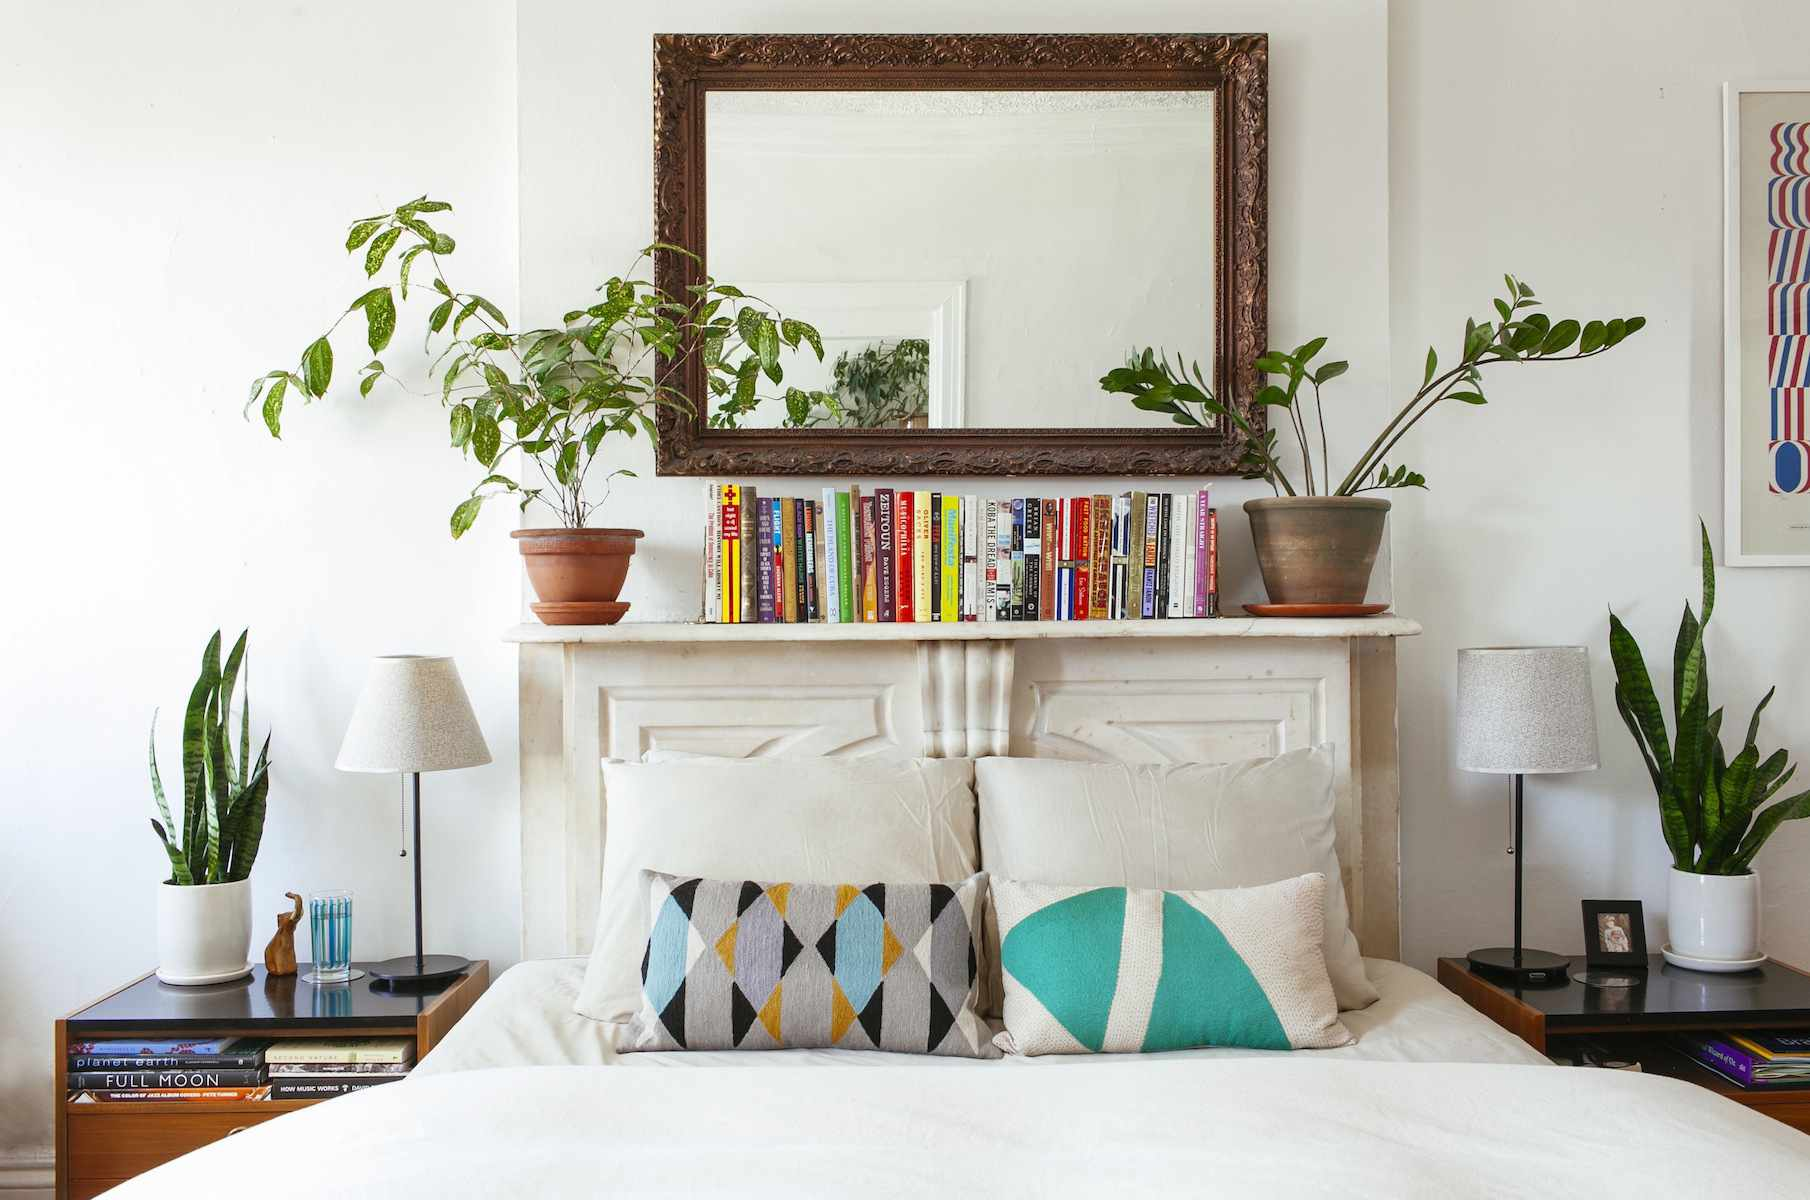 11 Houseplants Ideas That Liven Up Your Home